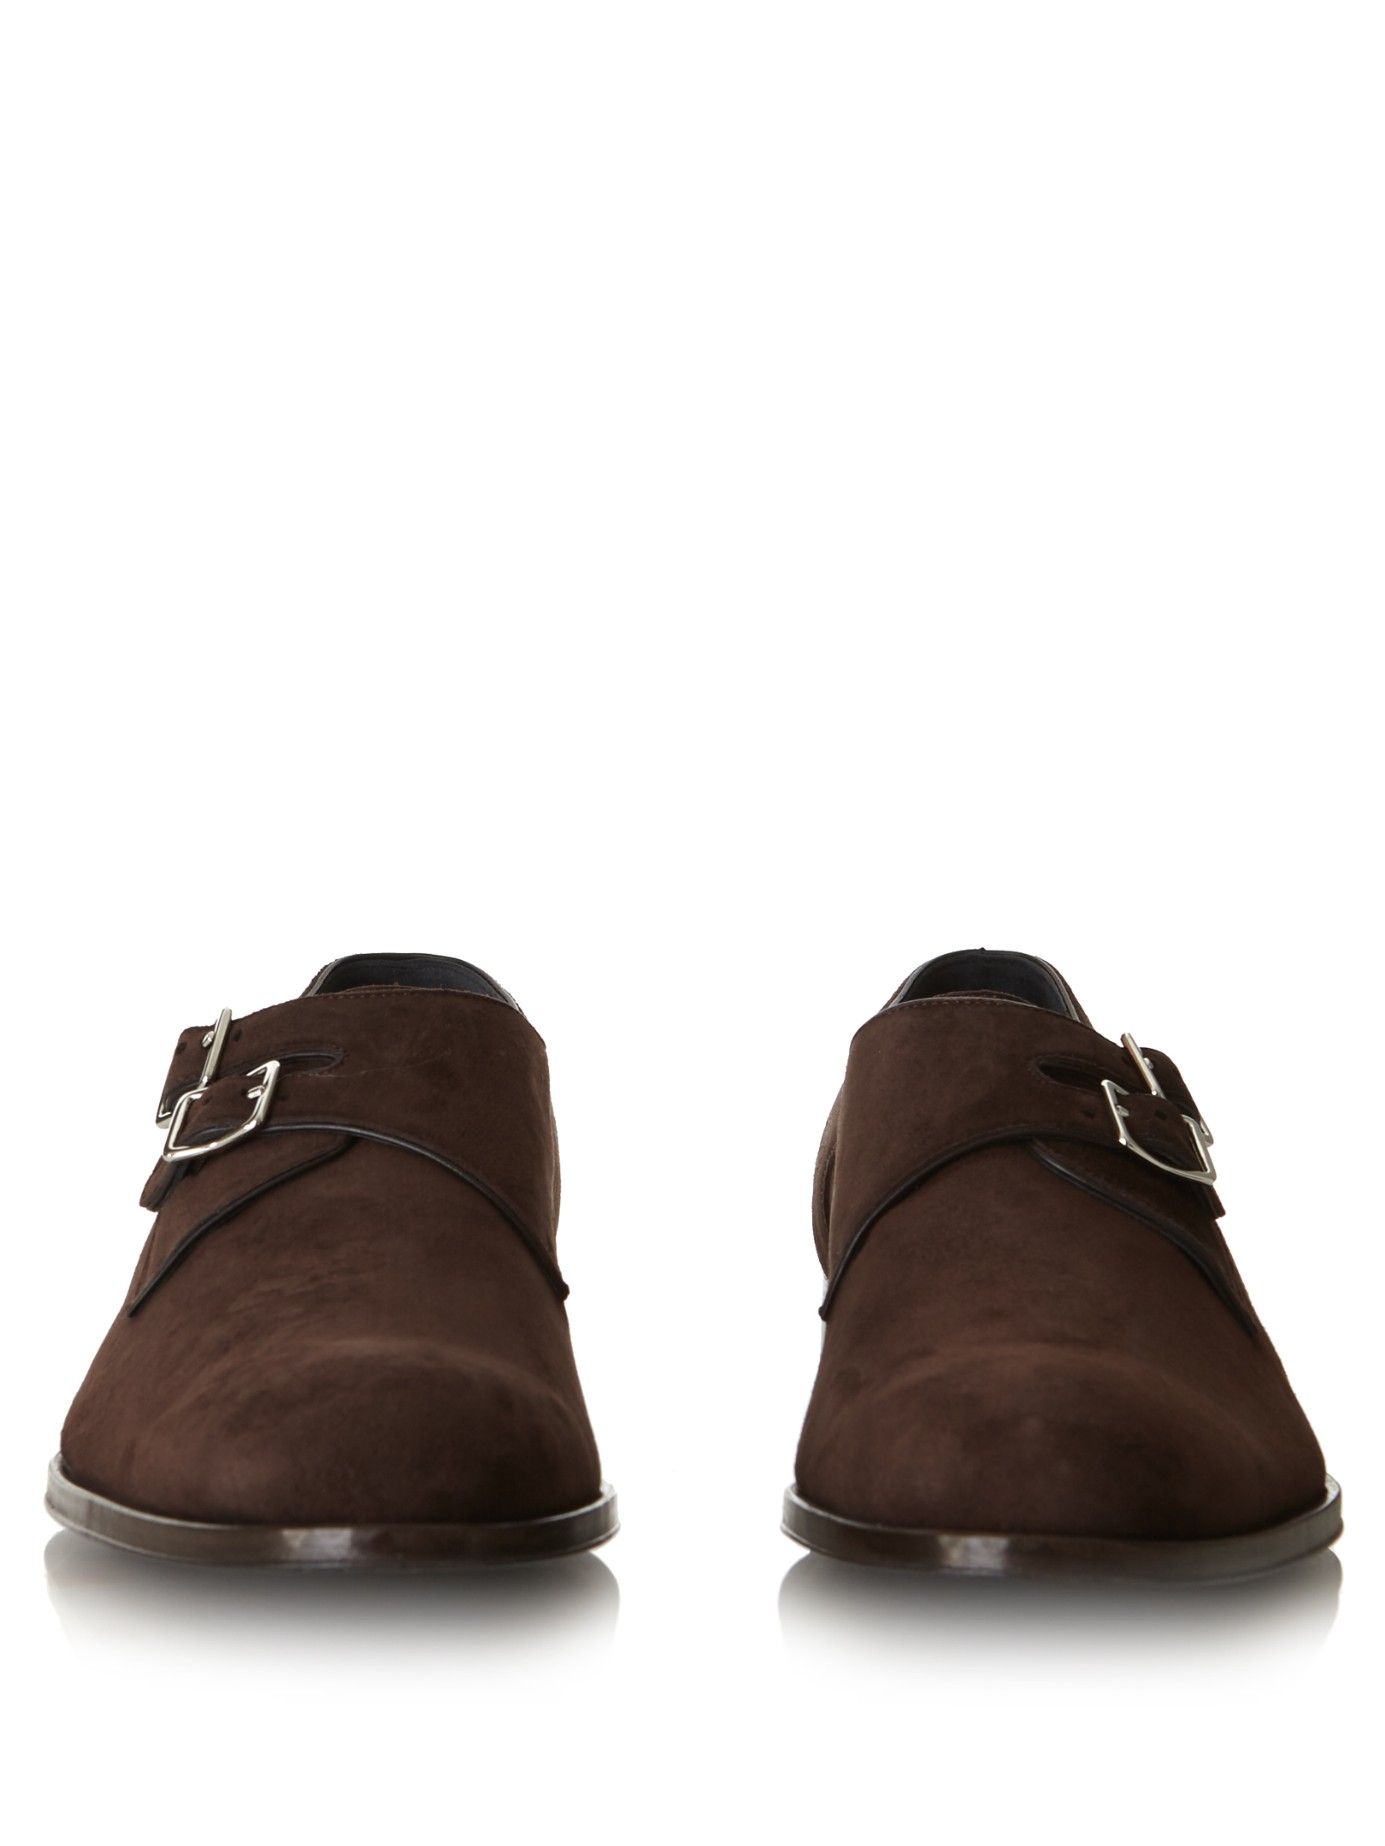 b42e05629435 Lyst - Mr. Hare Andreas Monk-strap Suede Shoes in Brown for Men